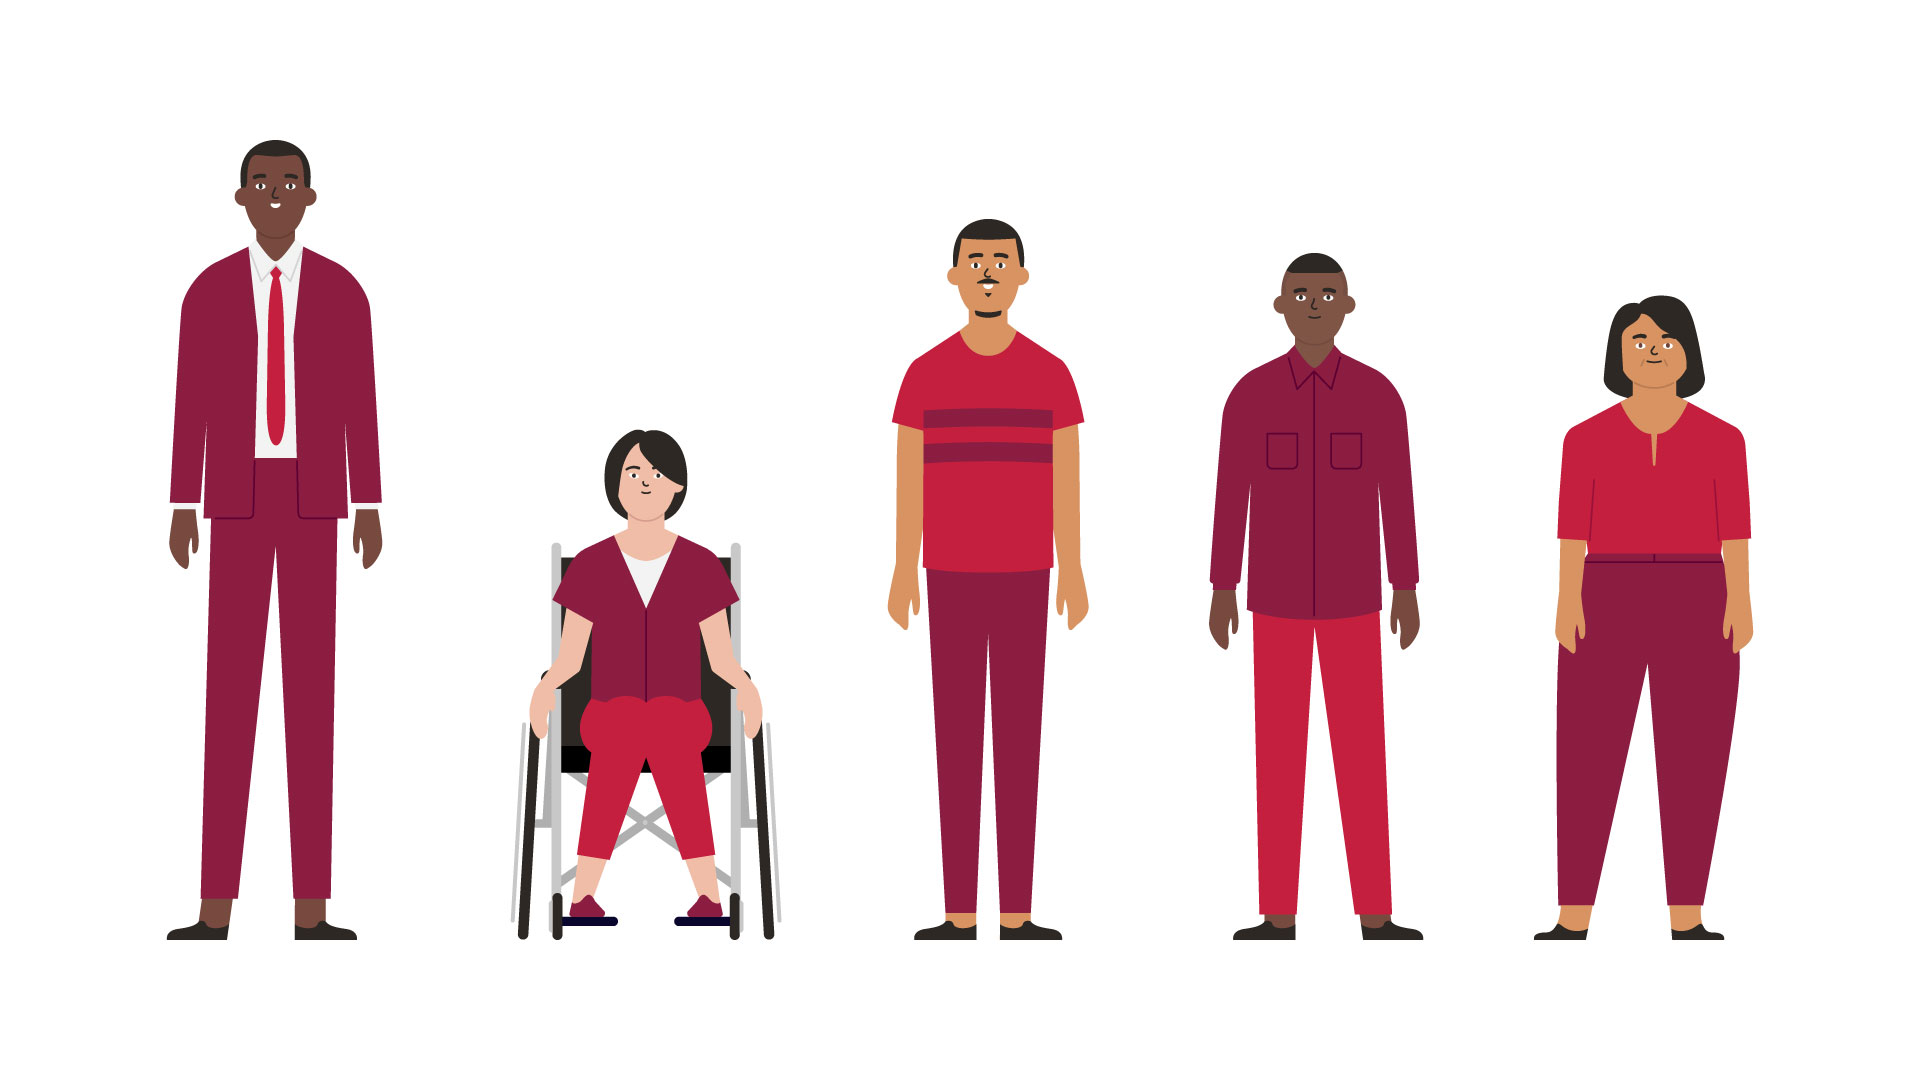 Vector illustration of different characters for the CIBC communications